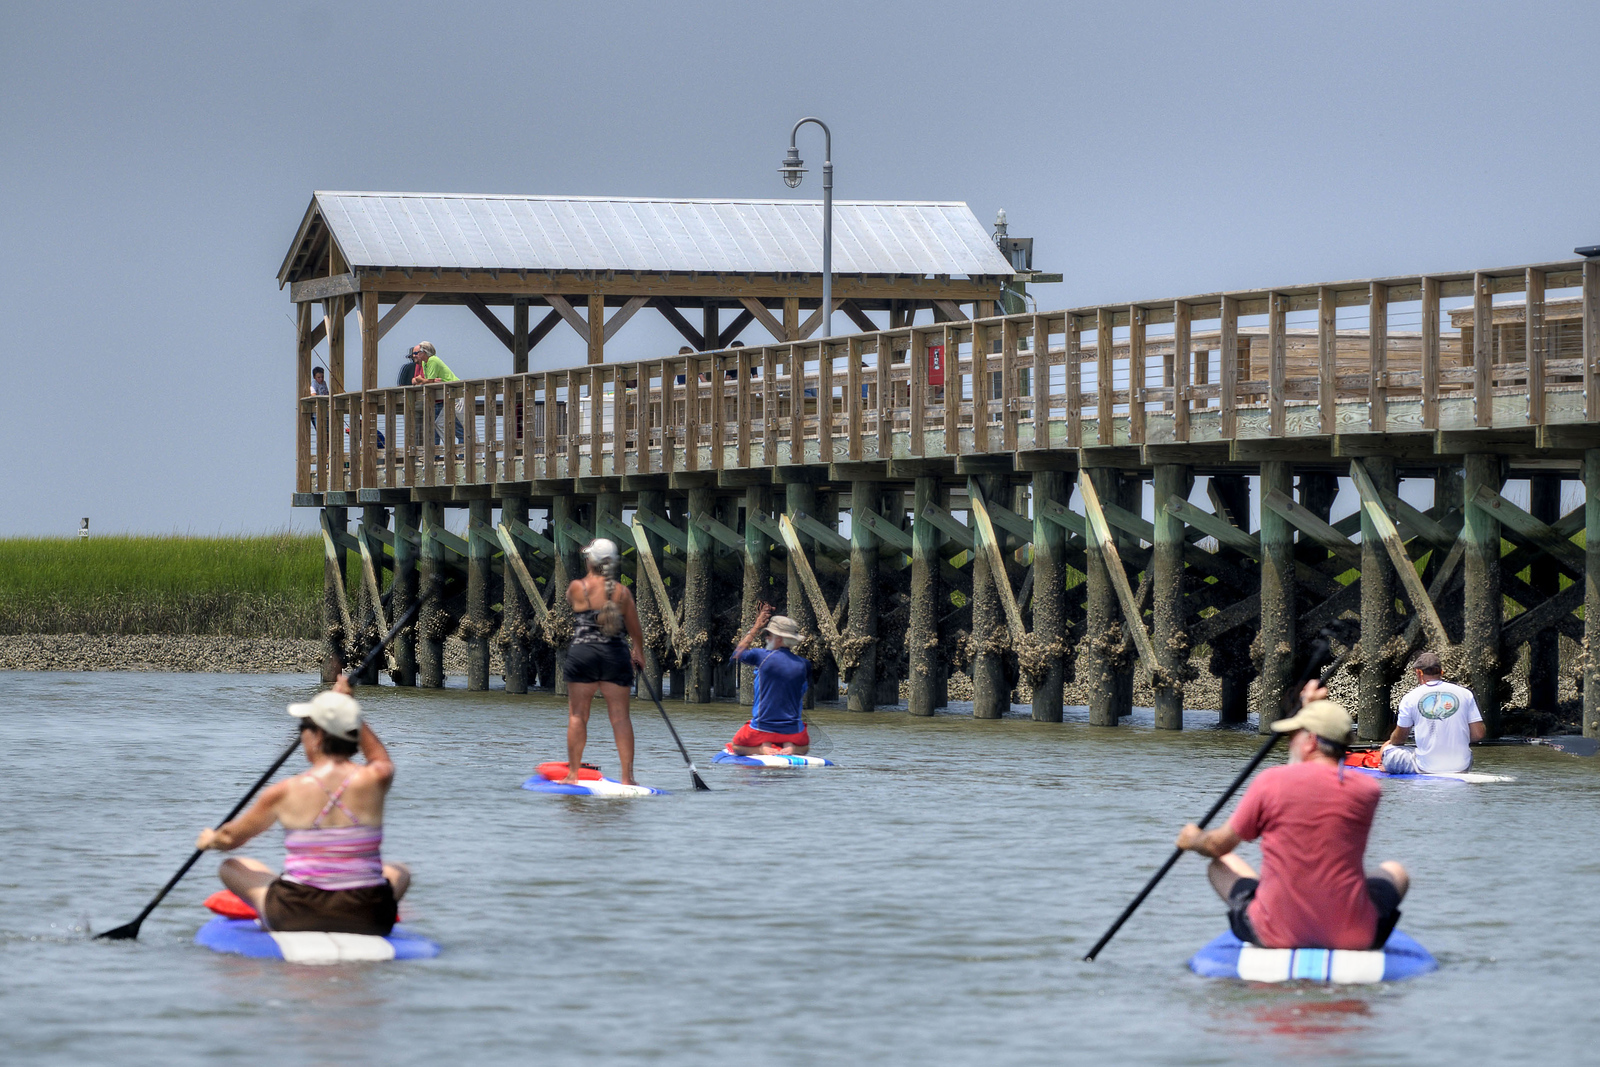 Paddleboarders head out along the creek at the Shem Creek Park & Boardwalk in Mt. Pleasant, SC on Wednesday, July 9, 2014. Copyright 2014 Jason Barnette